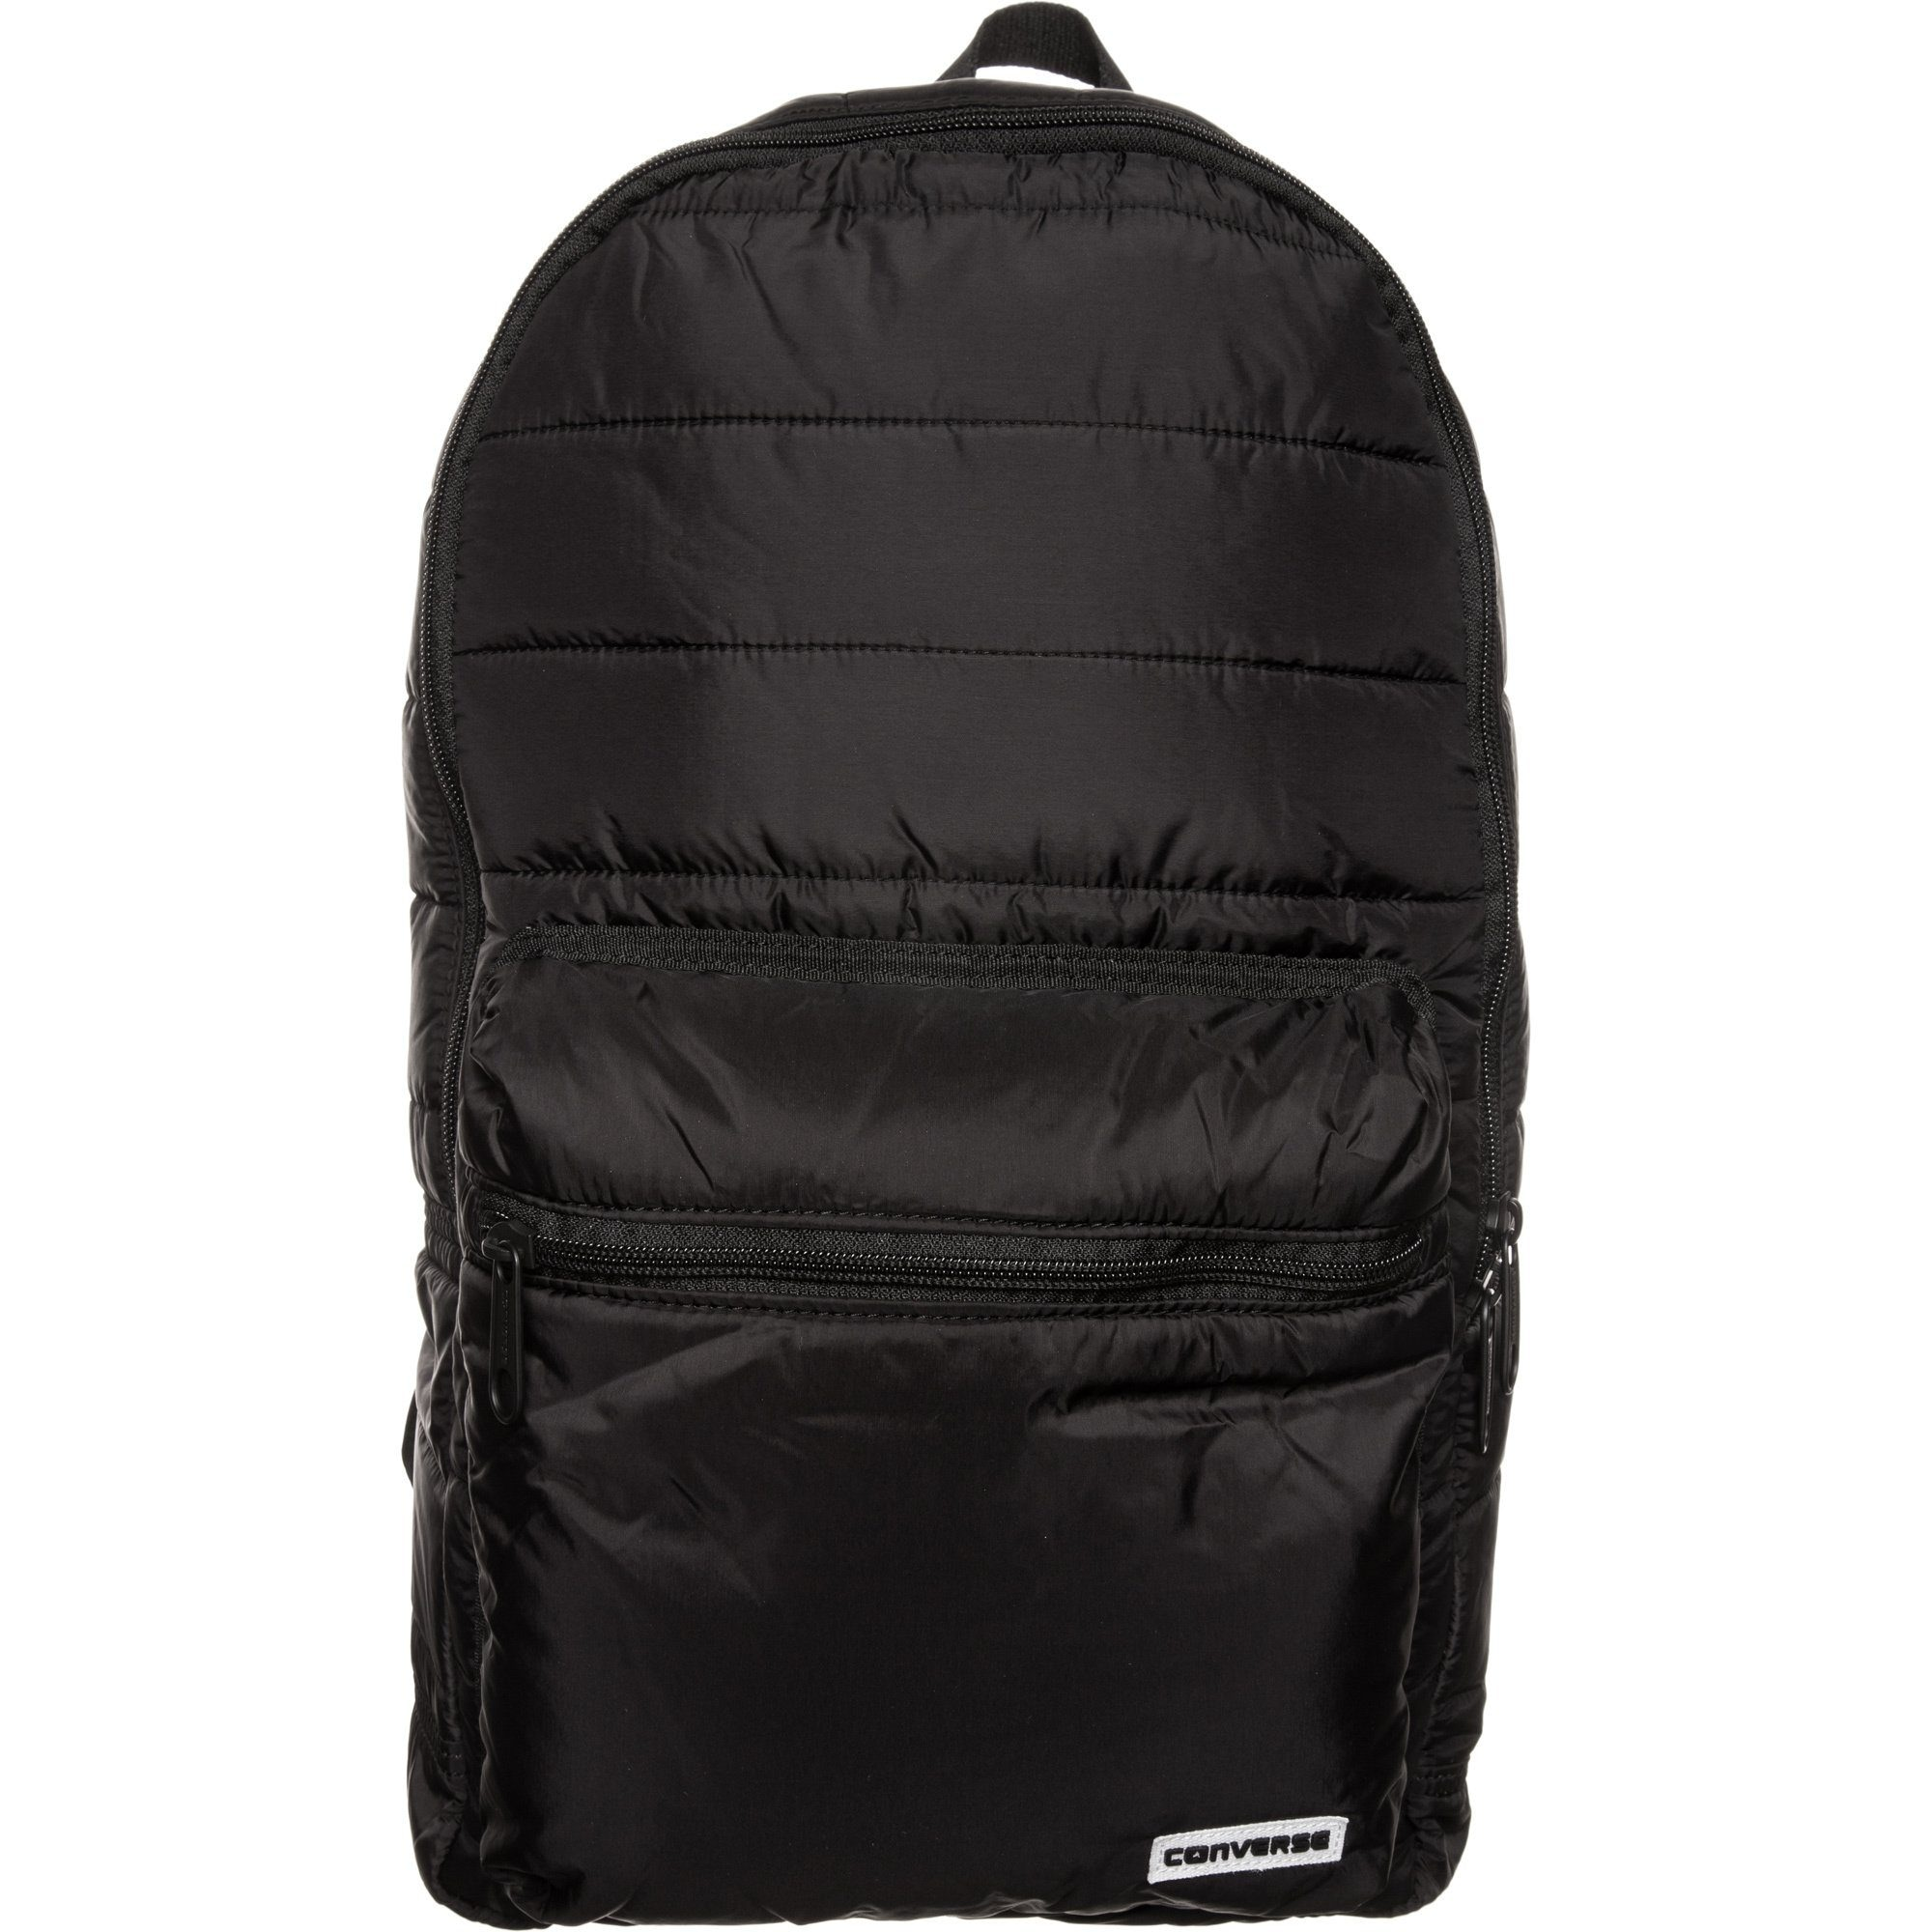 Converse All Star Packable Rucksack online bestellen | BAUR